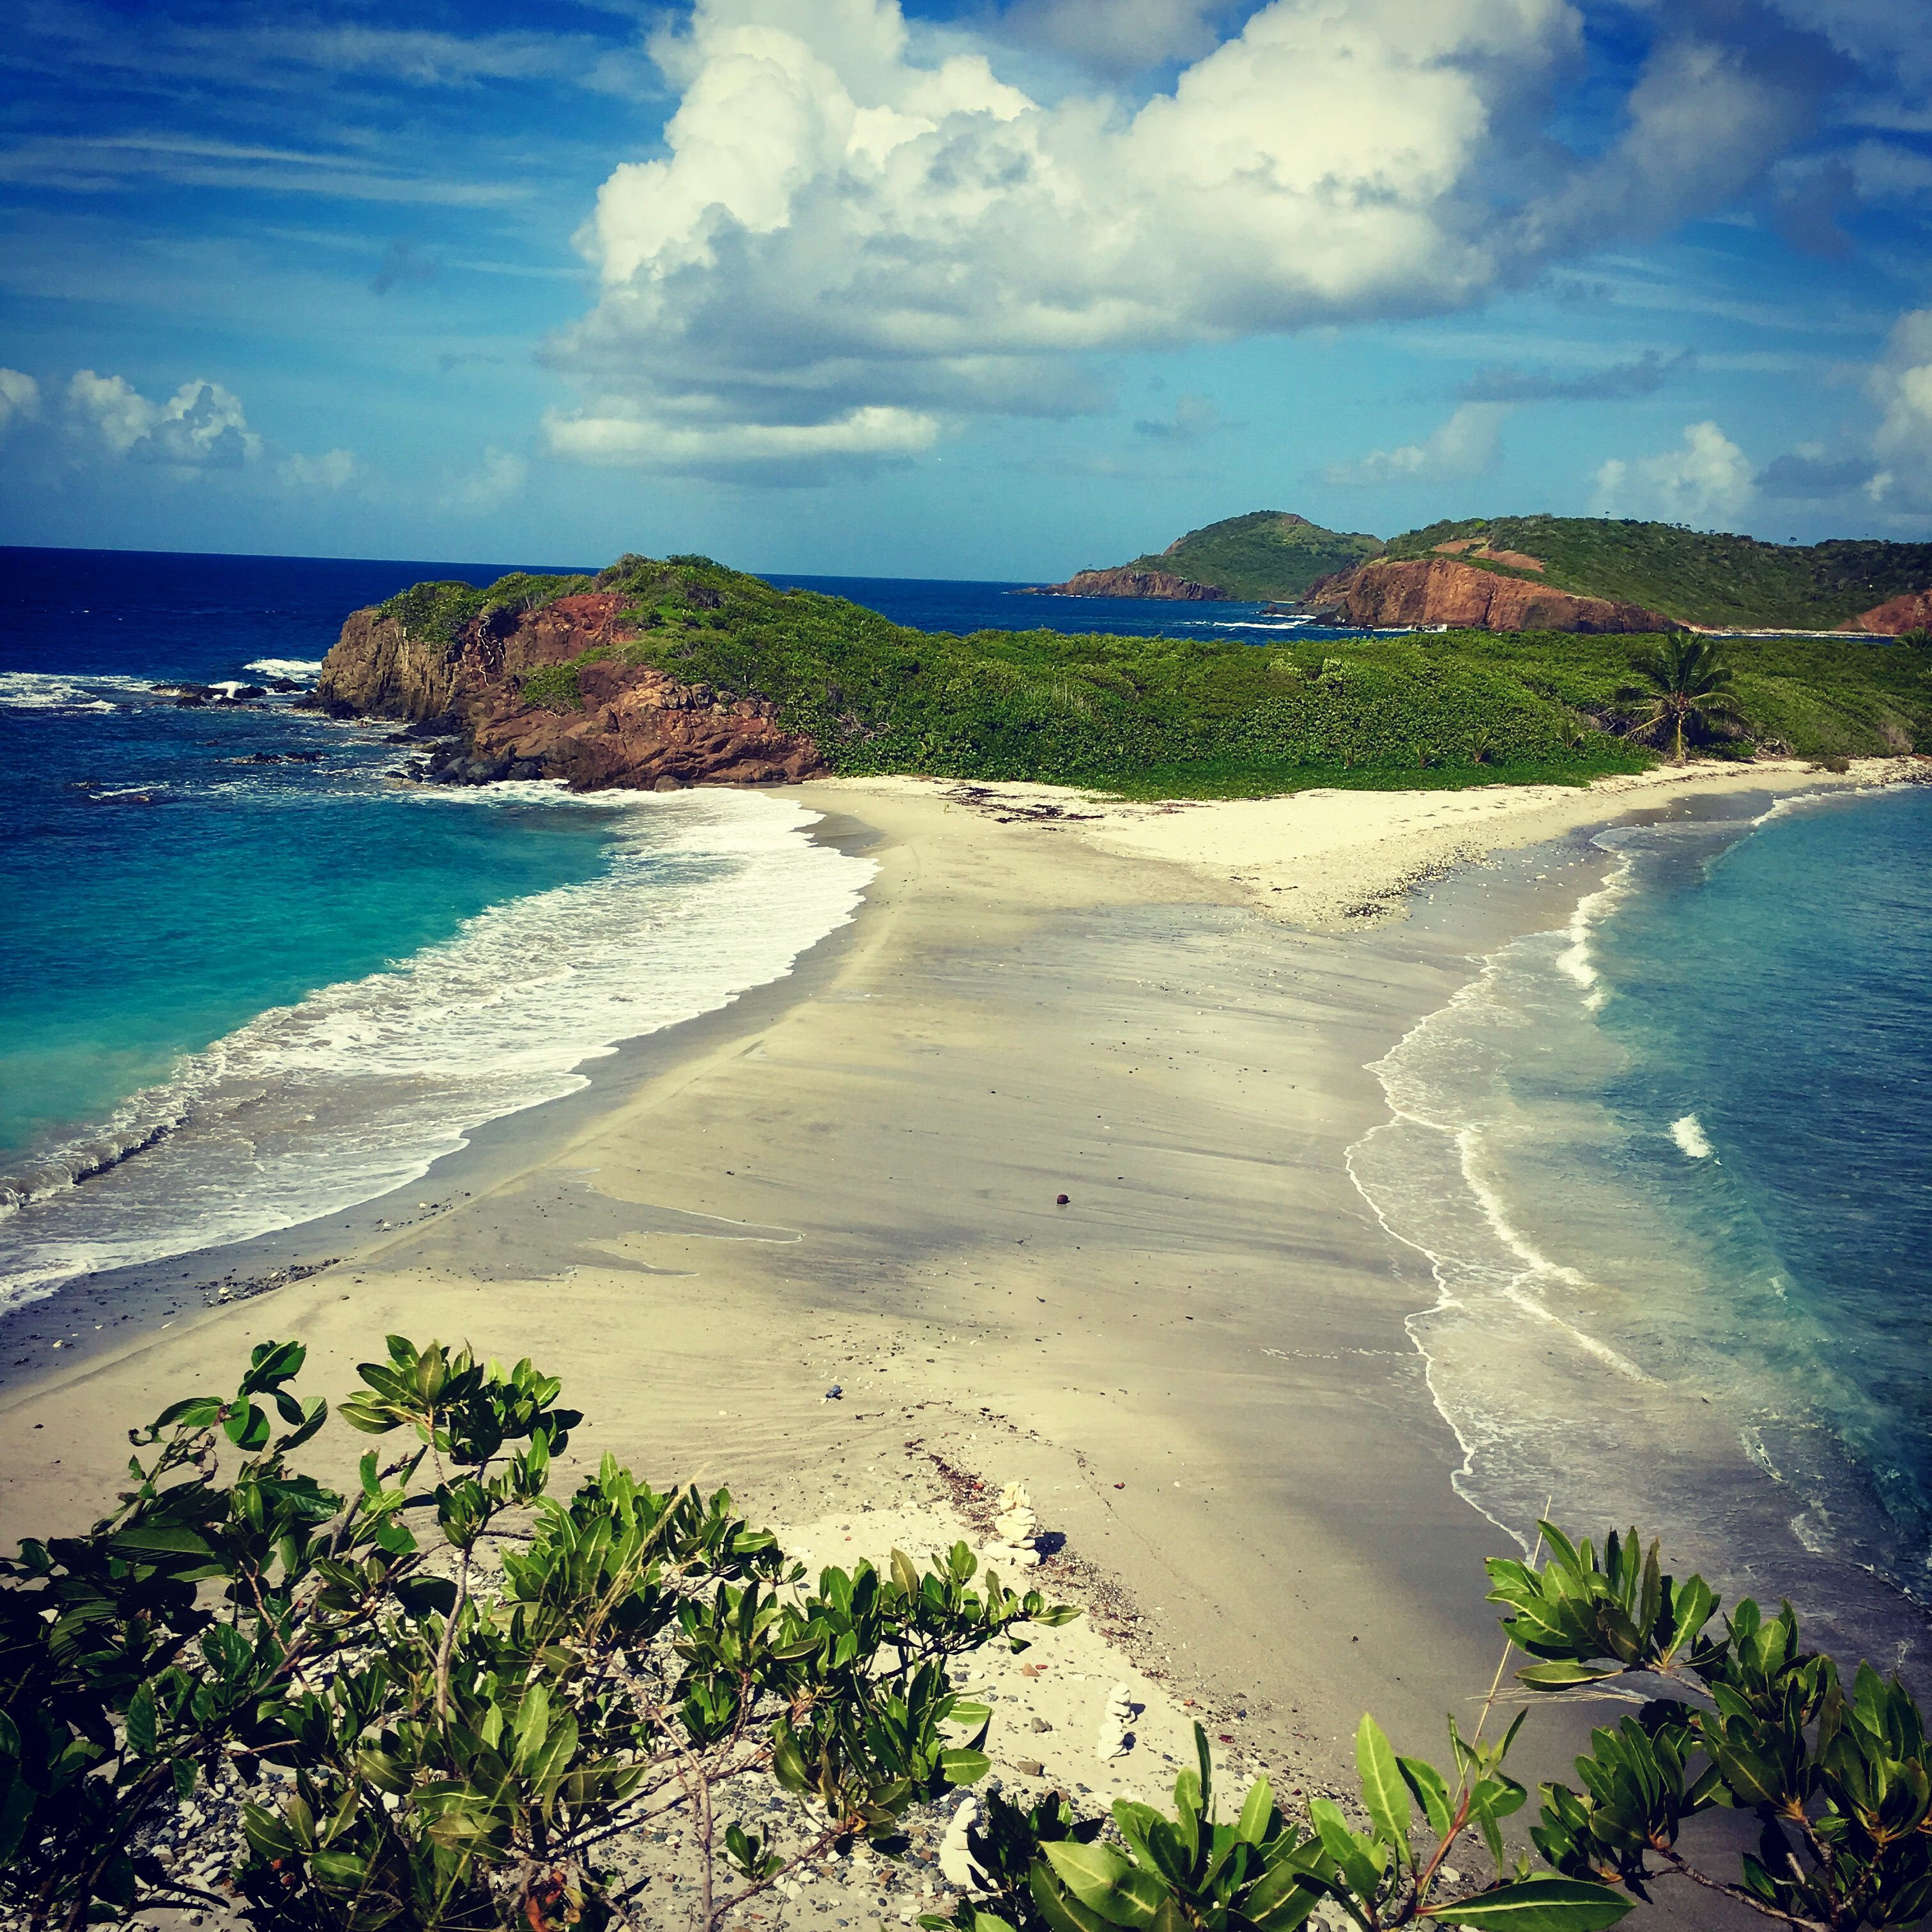 Virgin Islands: The Unique Geography Of Mermaid's Chair On St. Thomas